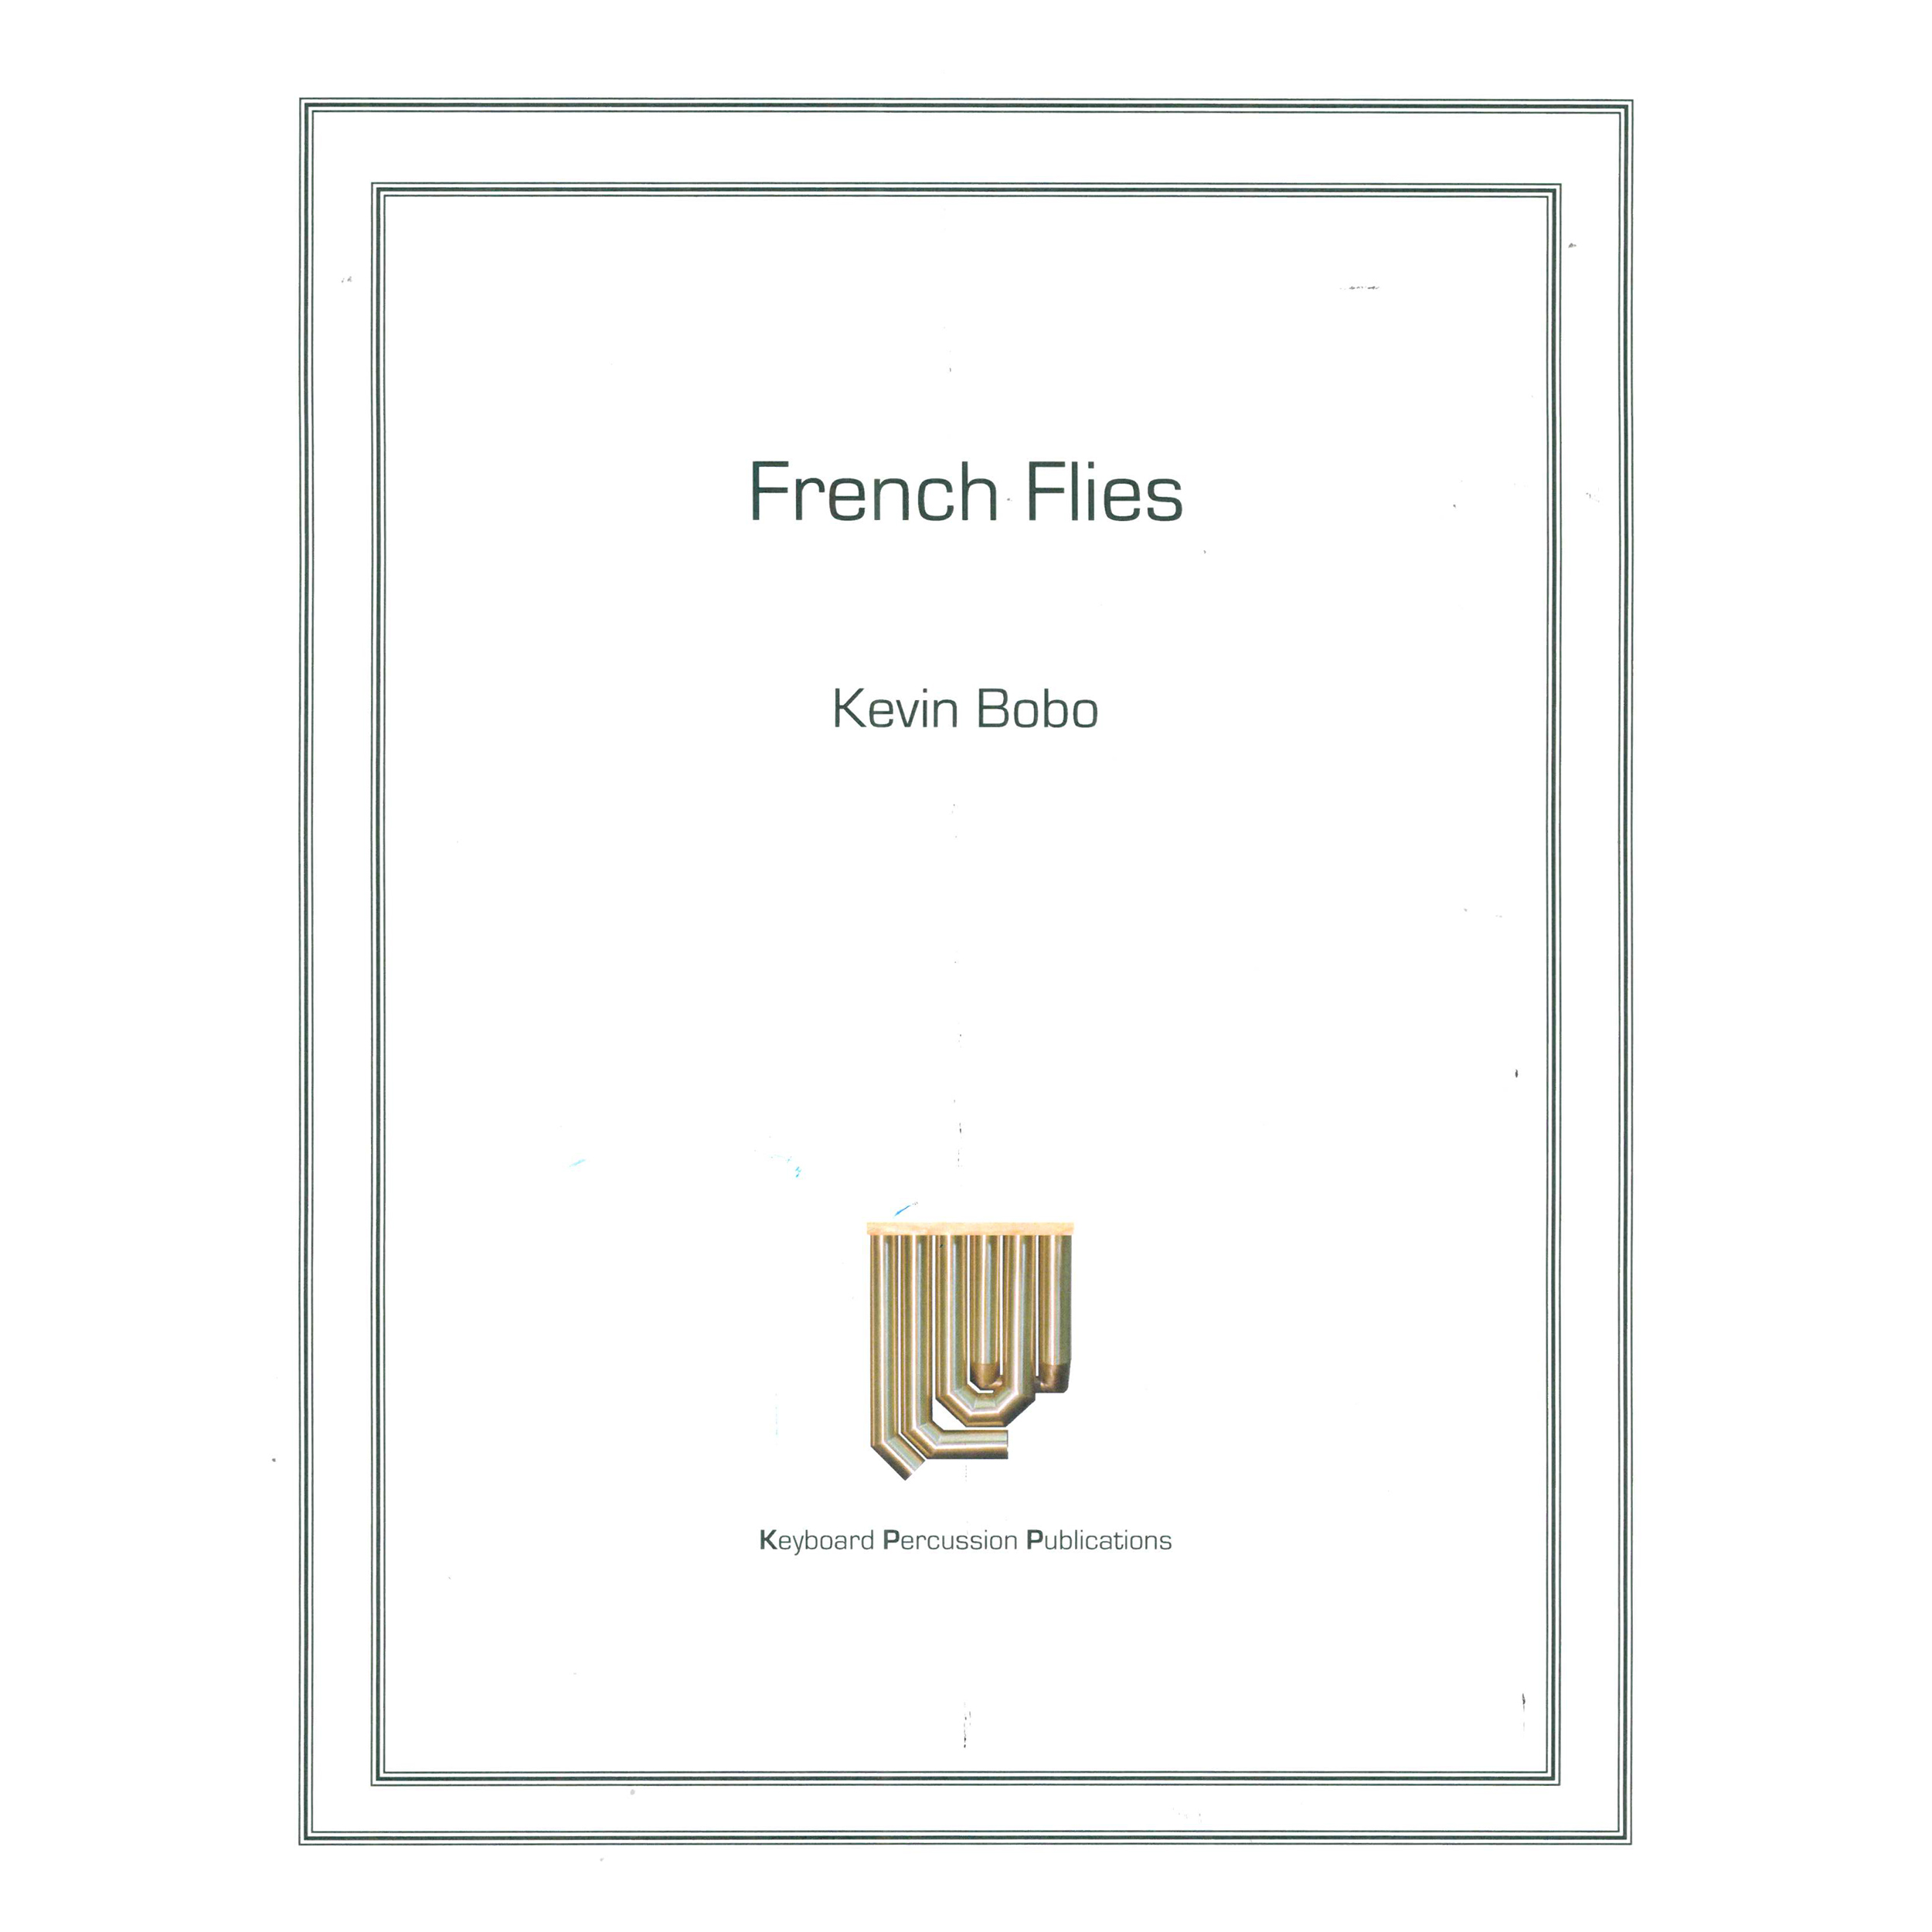 French Flies by Kevin Bobo